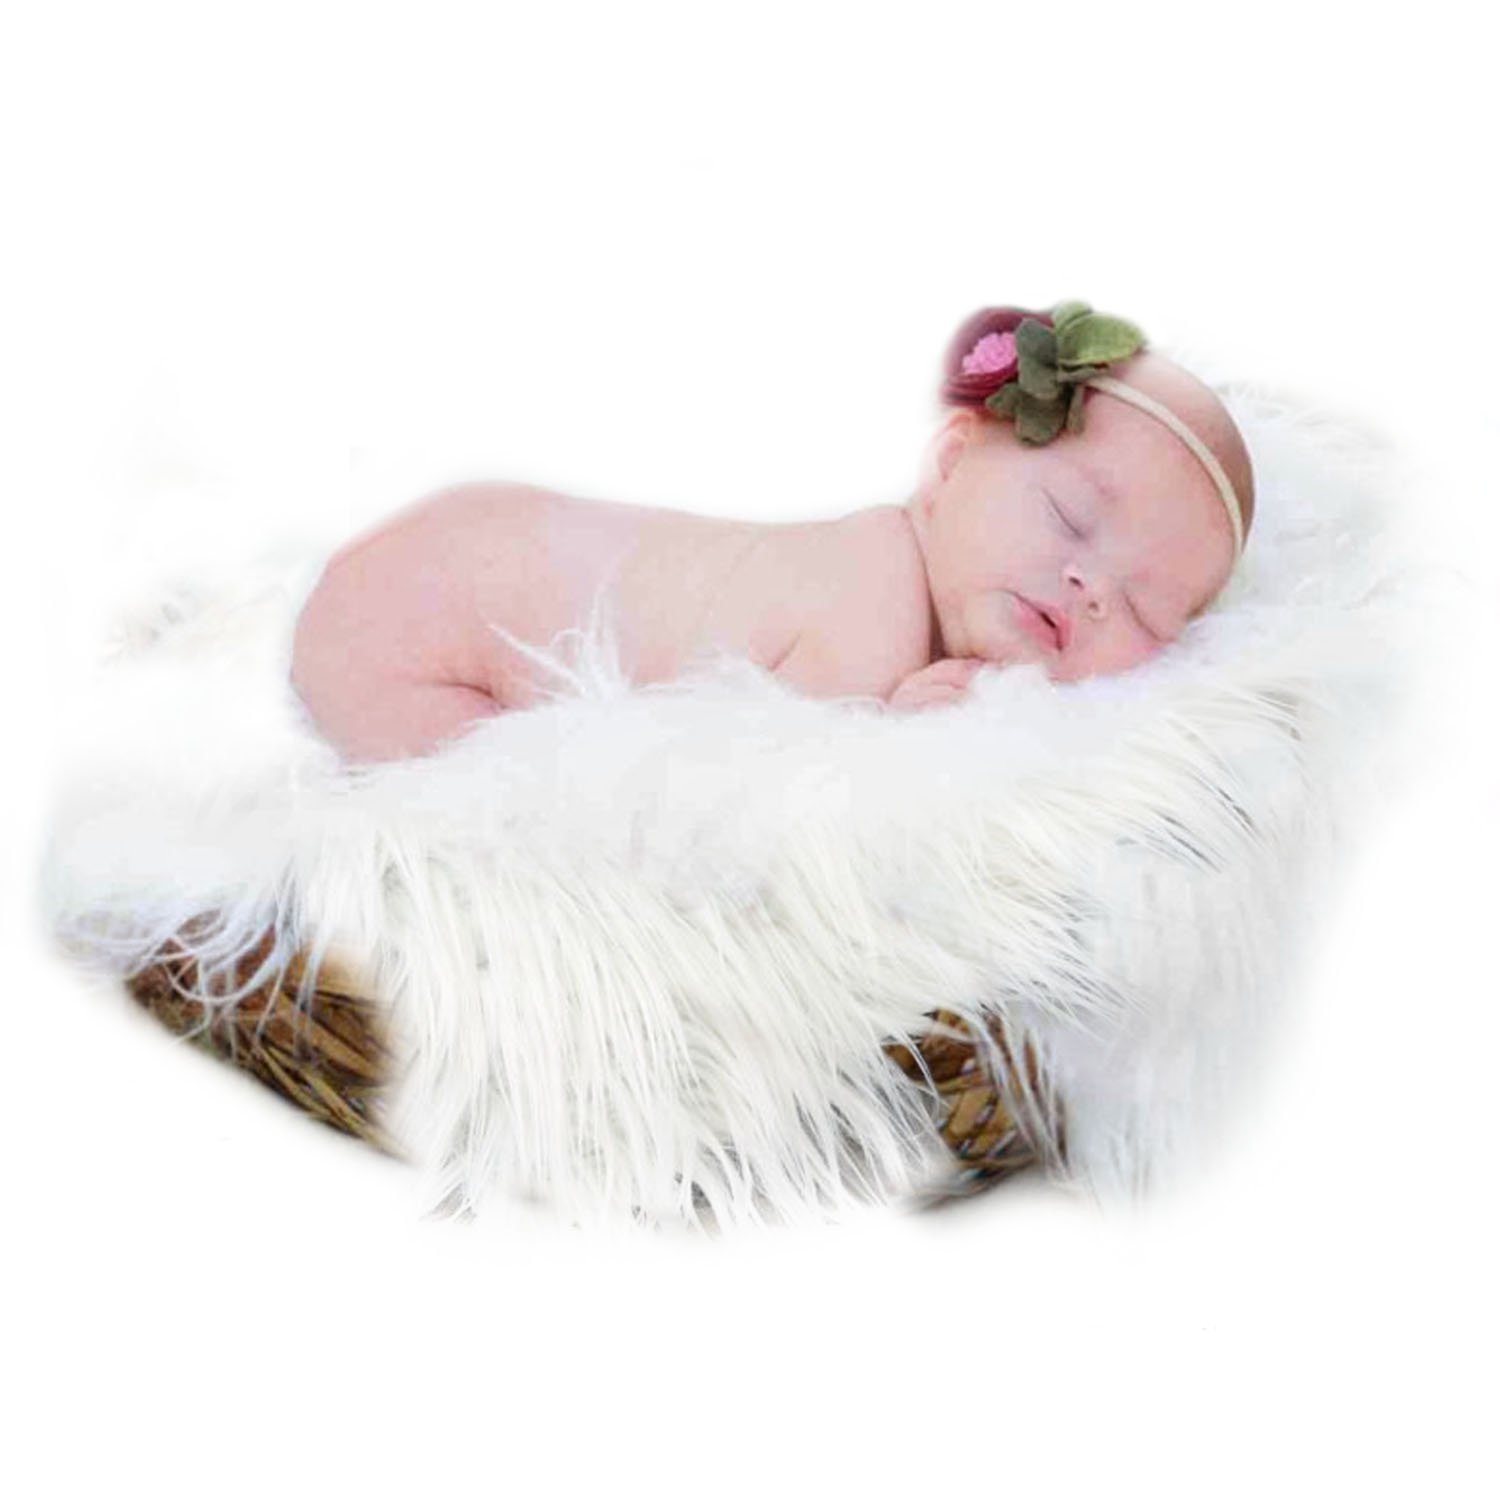 Soft Photo Blanket, Aniwon Baby Photo Prop Long Hair Shaggy Rug Photography Wrap for Newborn